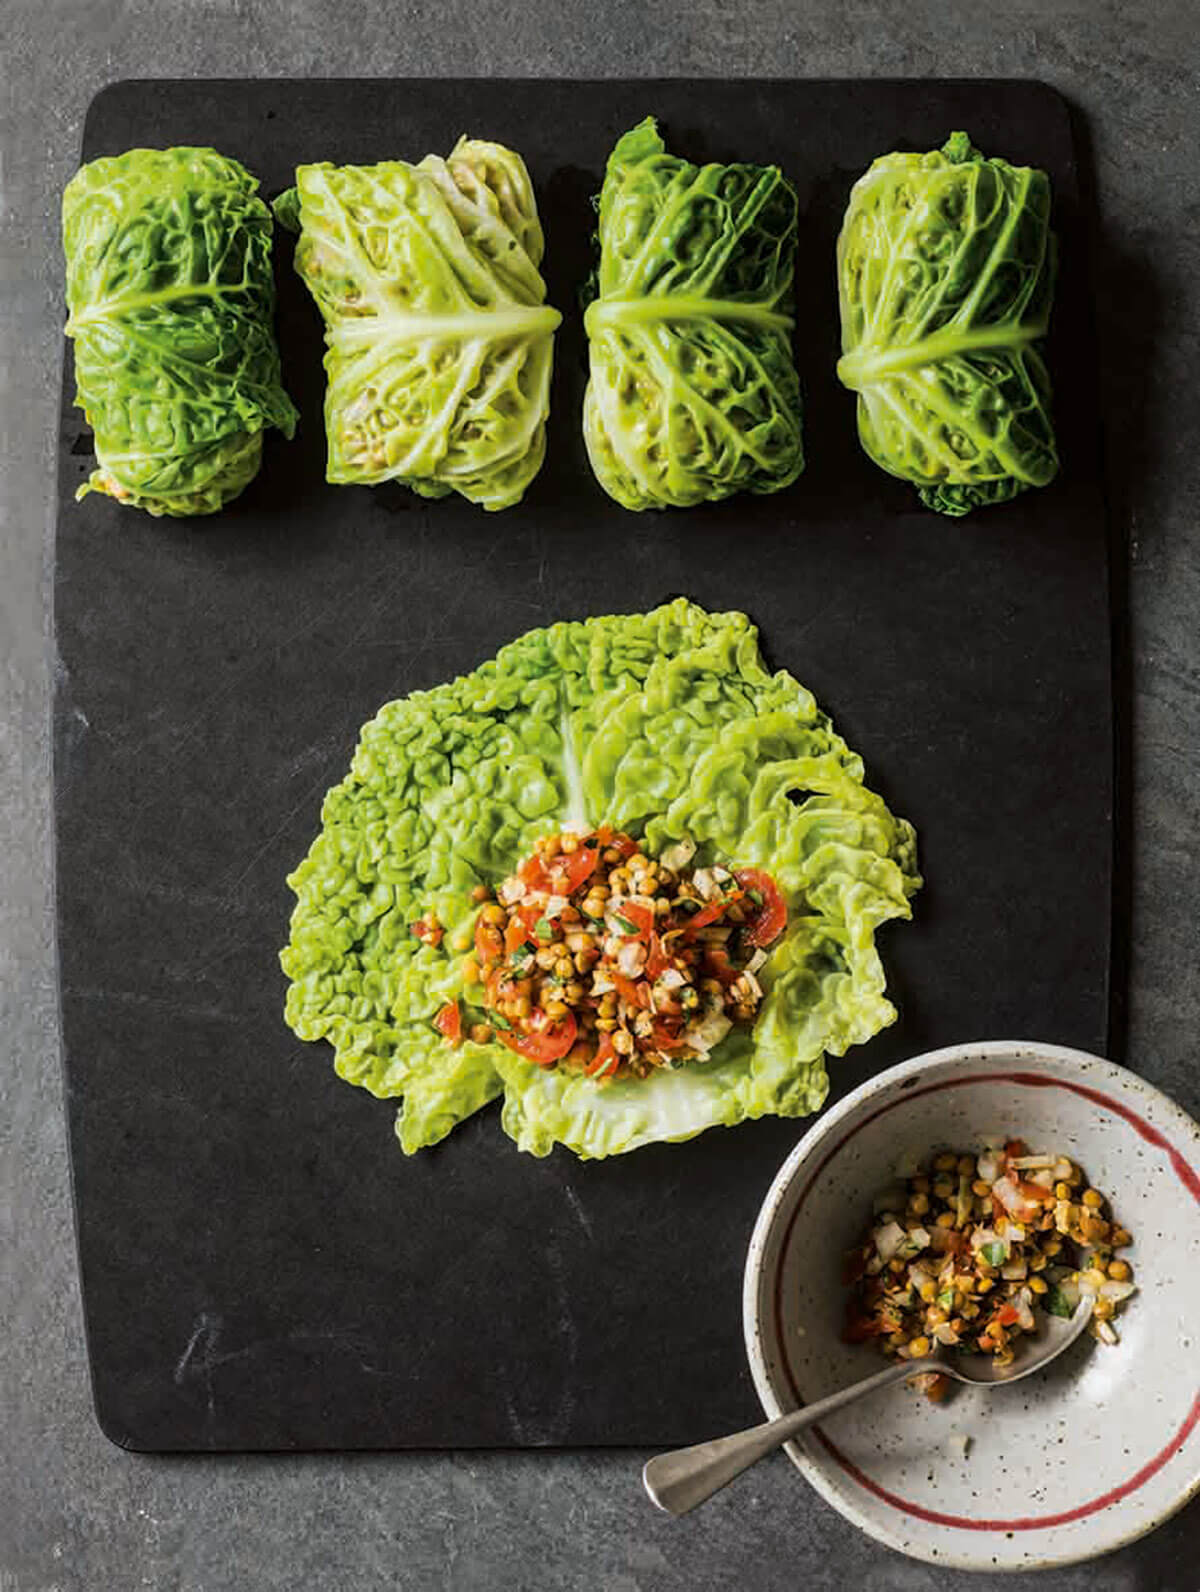 Stuffed cabbage leaves baked in tomato sauce, from The Middle Eastern Vegetarian Cookbook